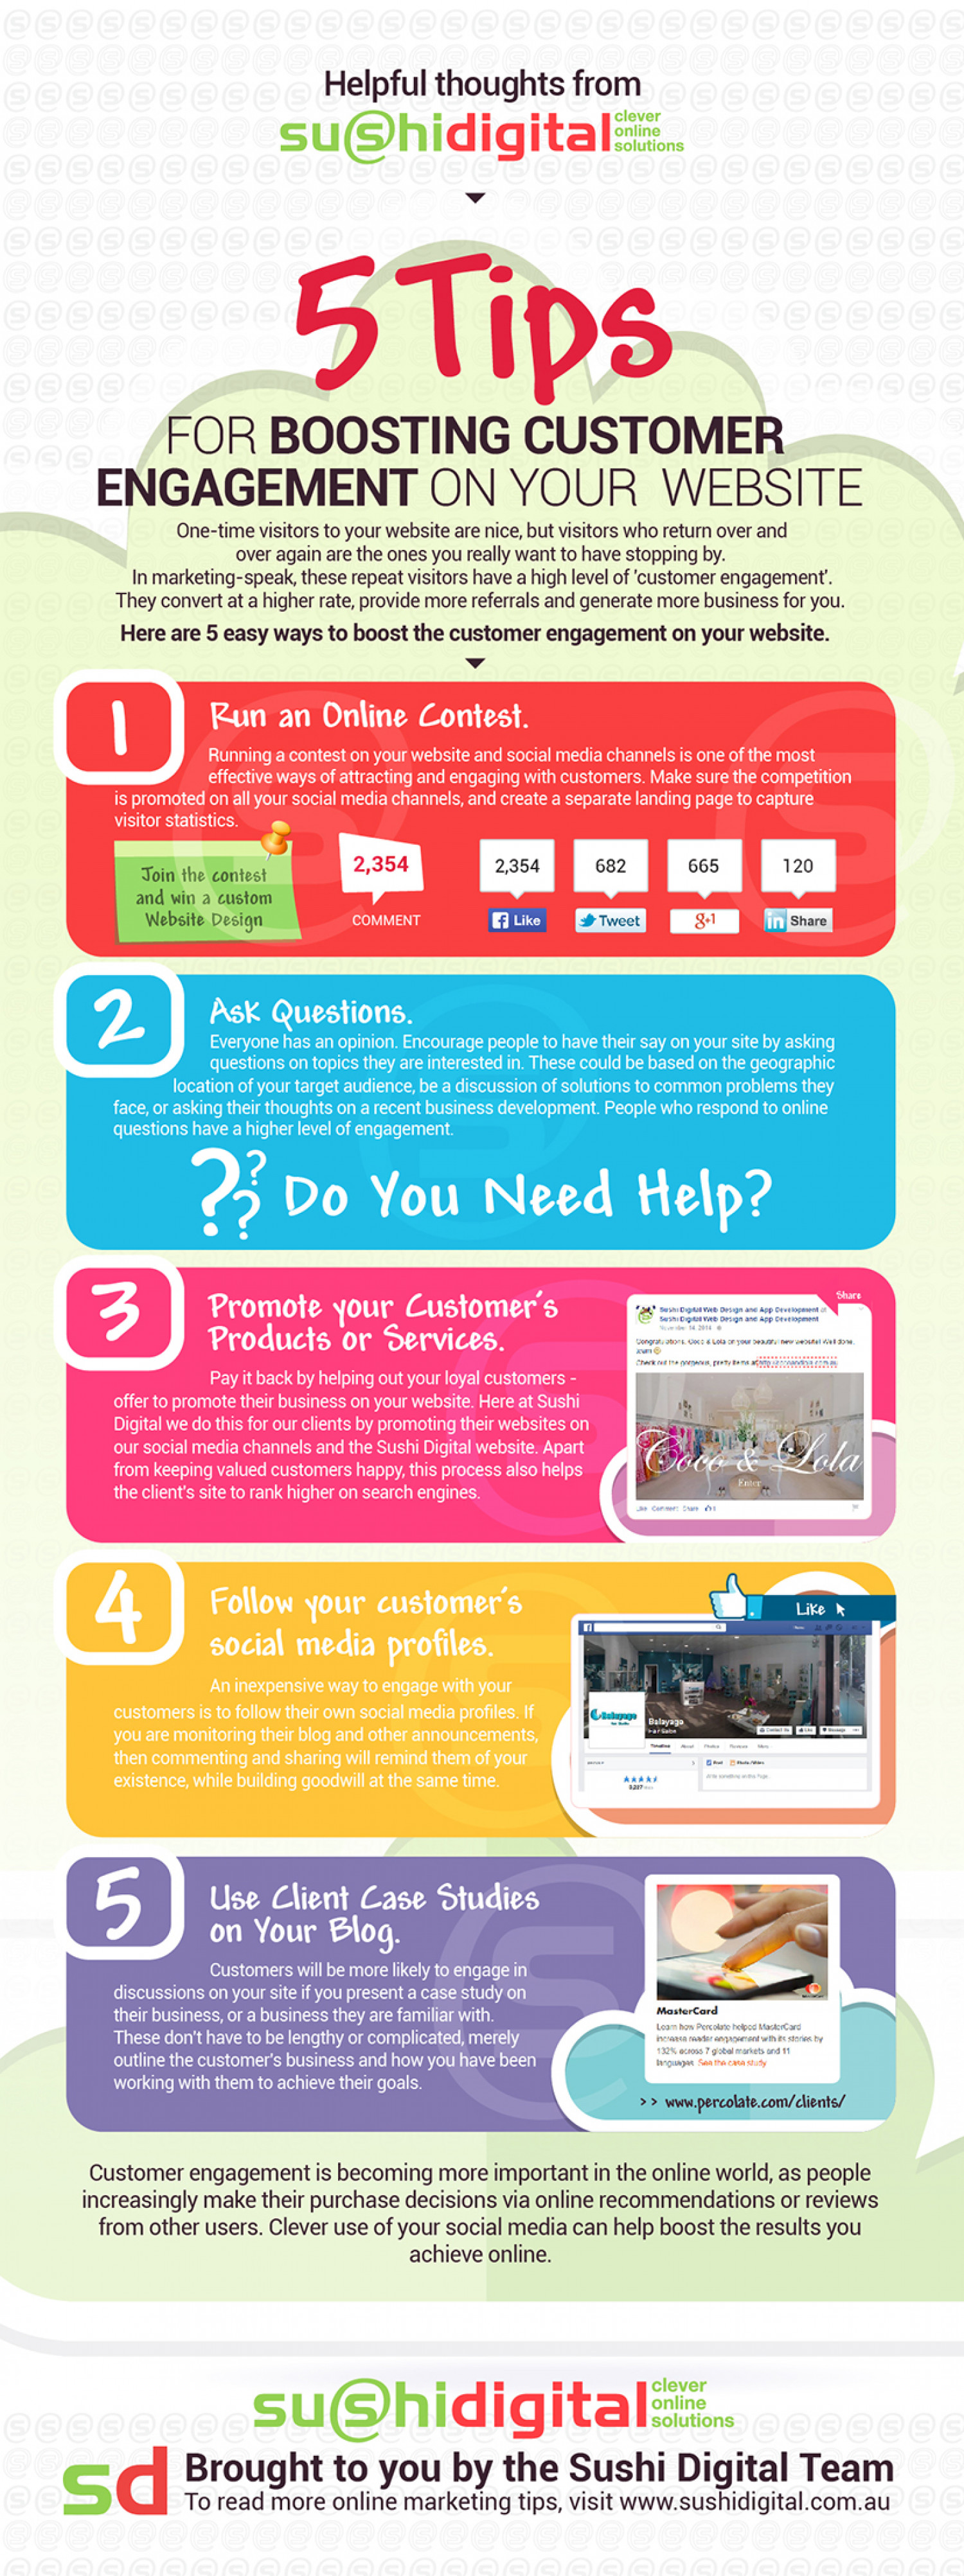 5 Tips for Boosting Customer Engagement on Your Website Infographic